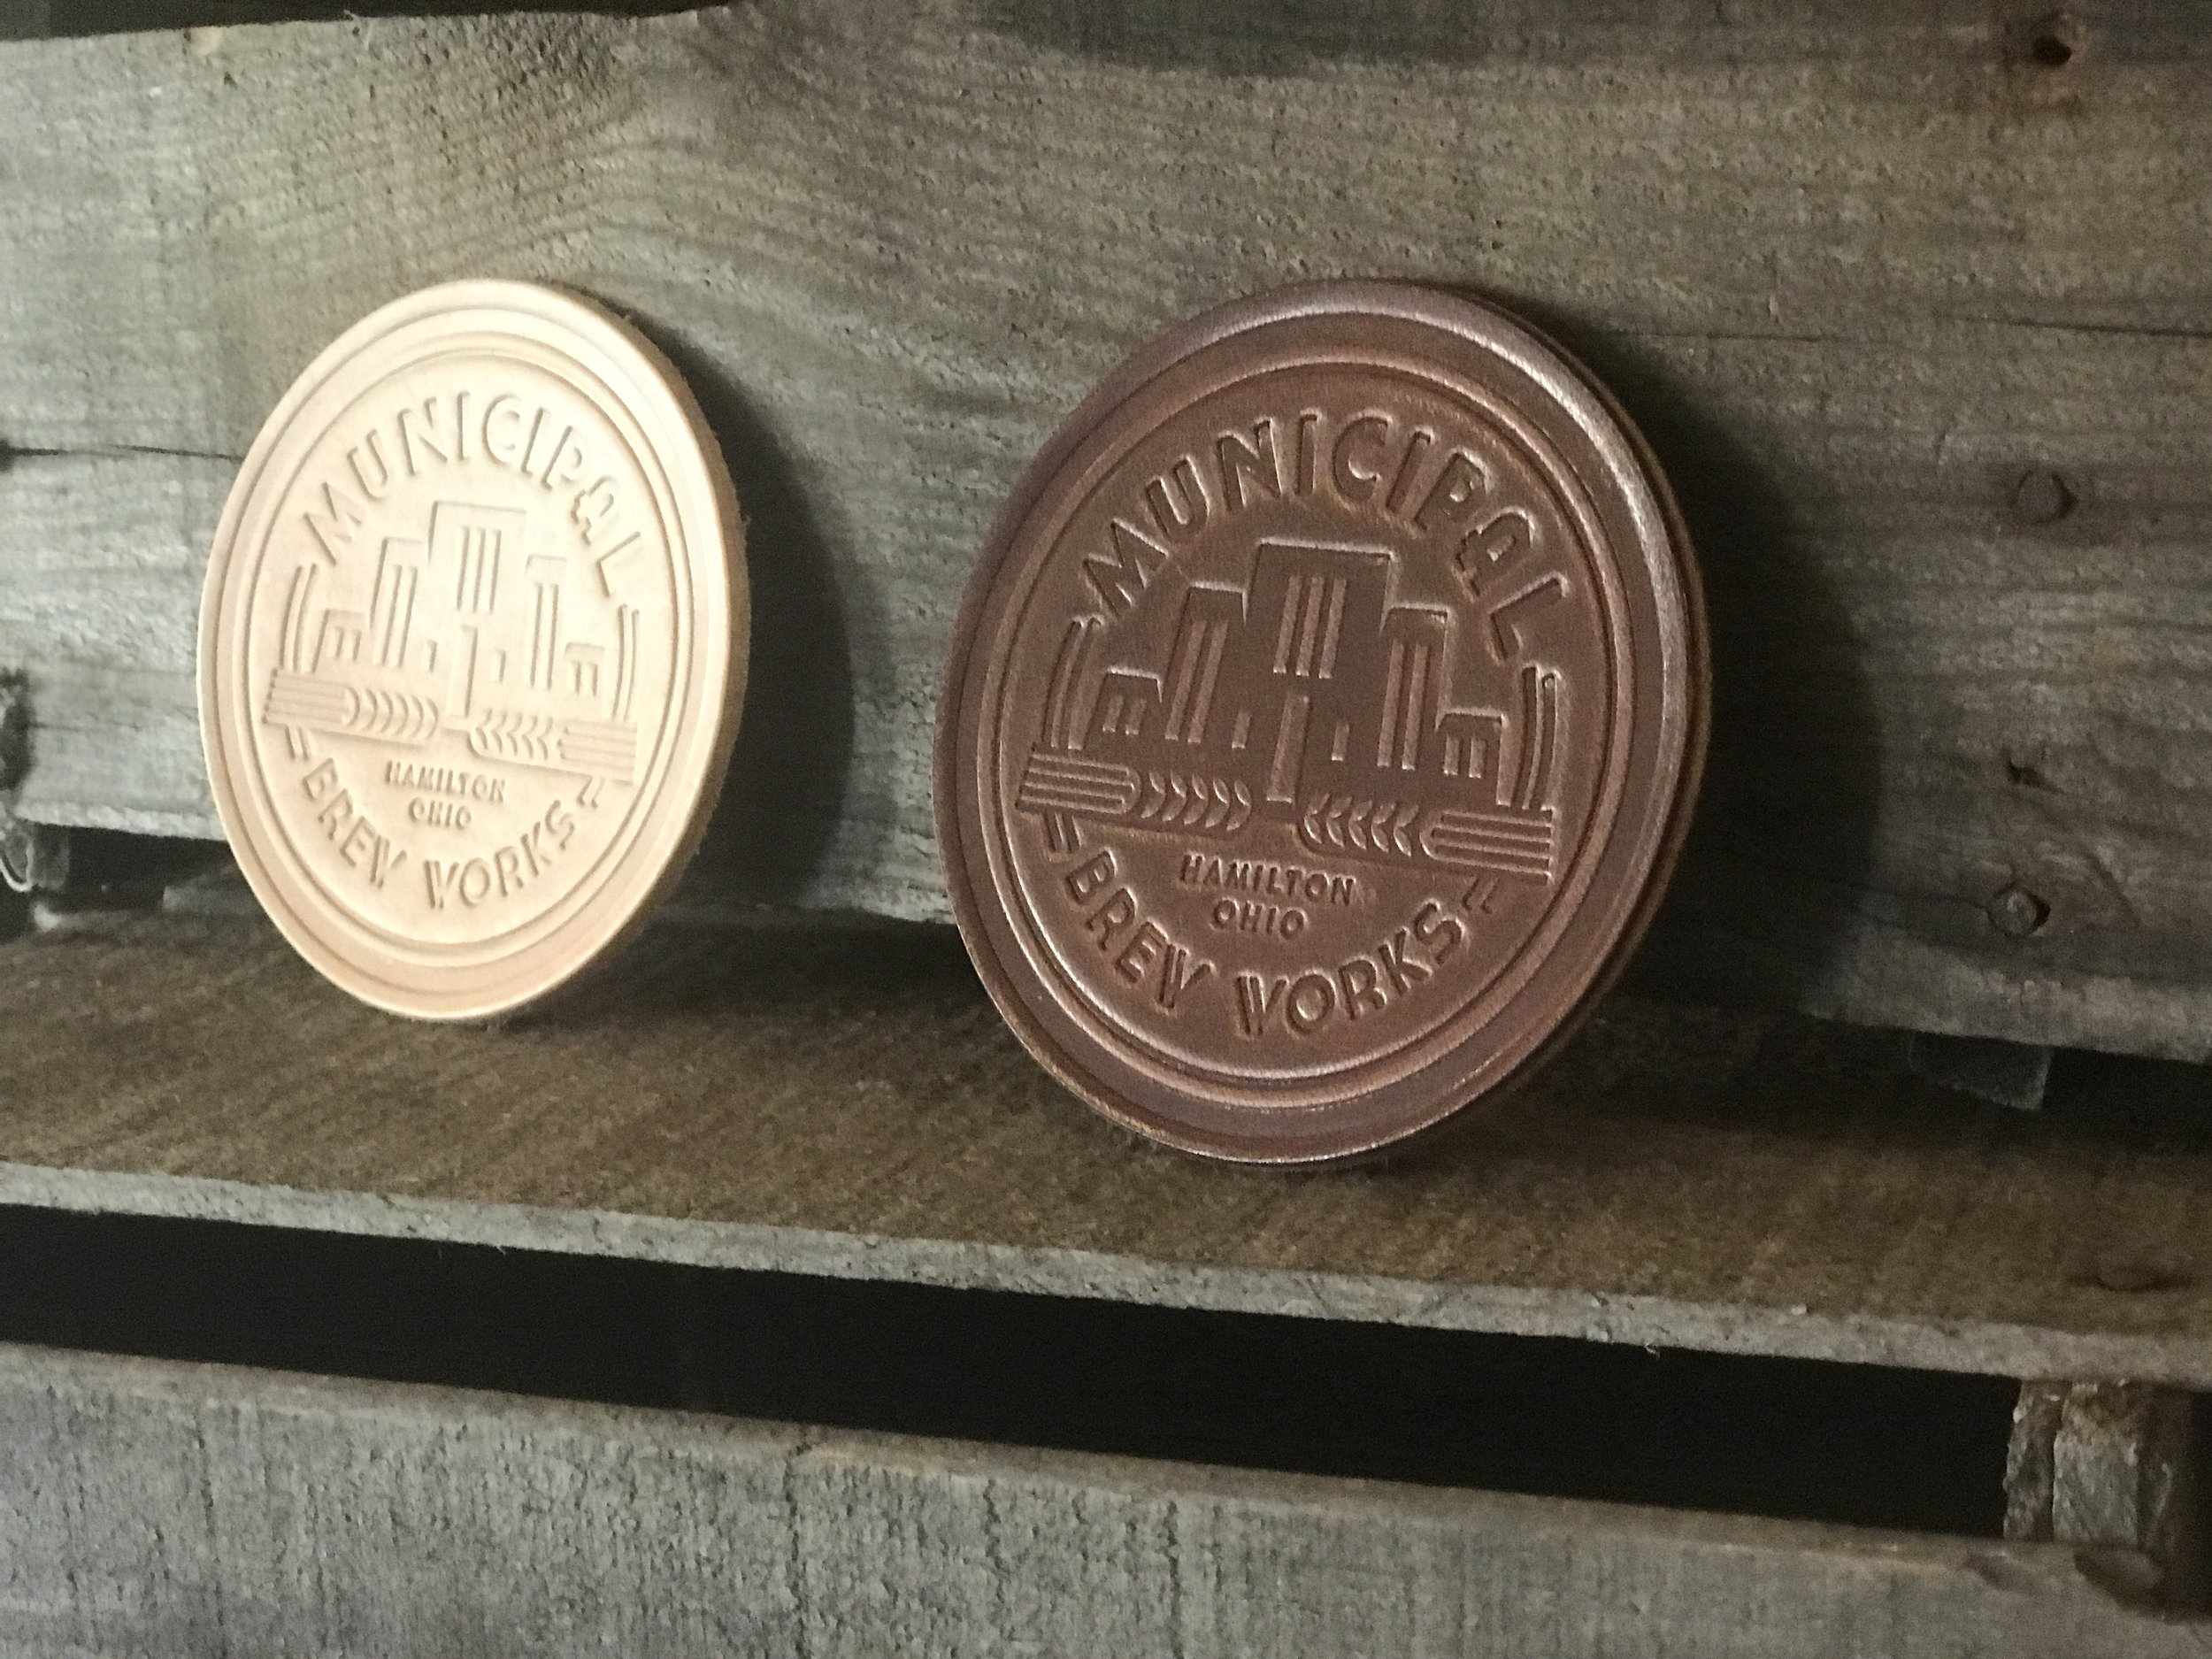 Municipal Brew Works - A custom leather coaster project for Municipal Brew Works in Hamilton, Ohio.